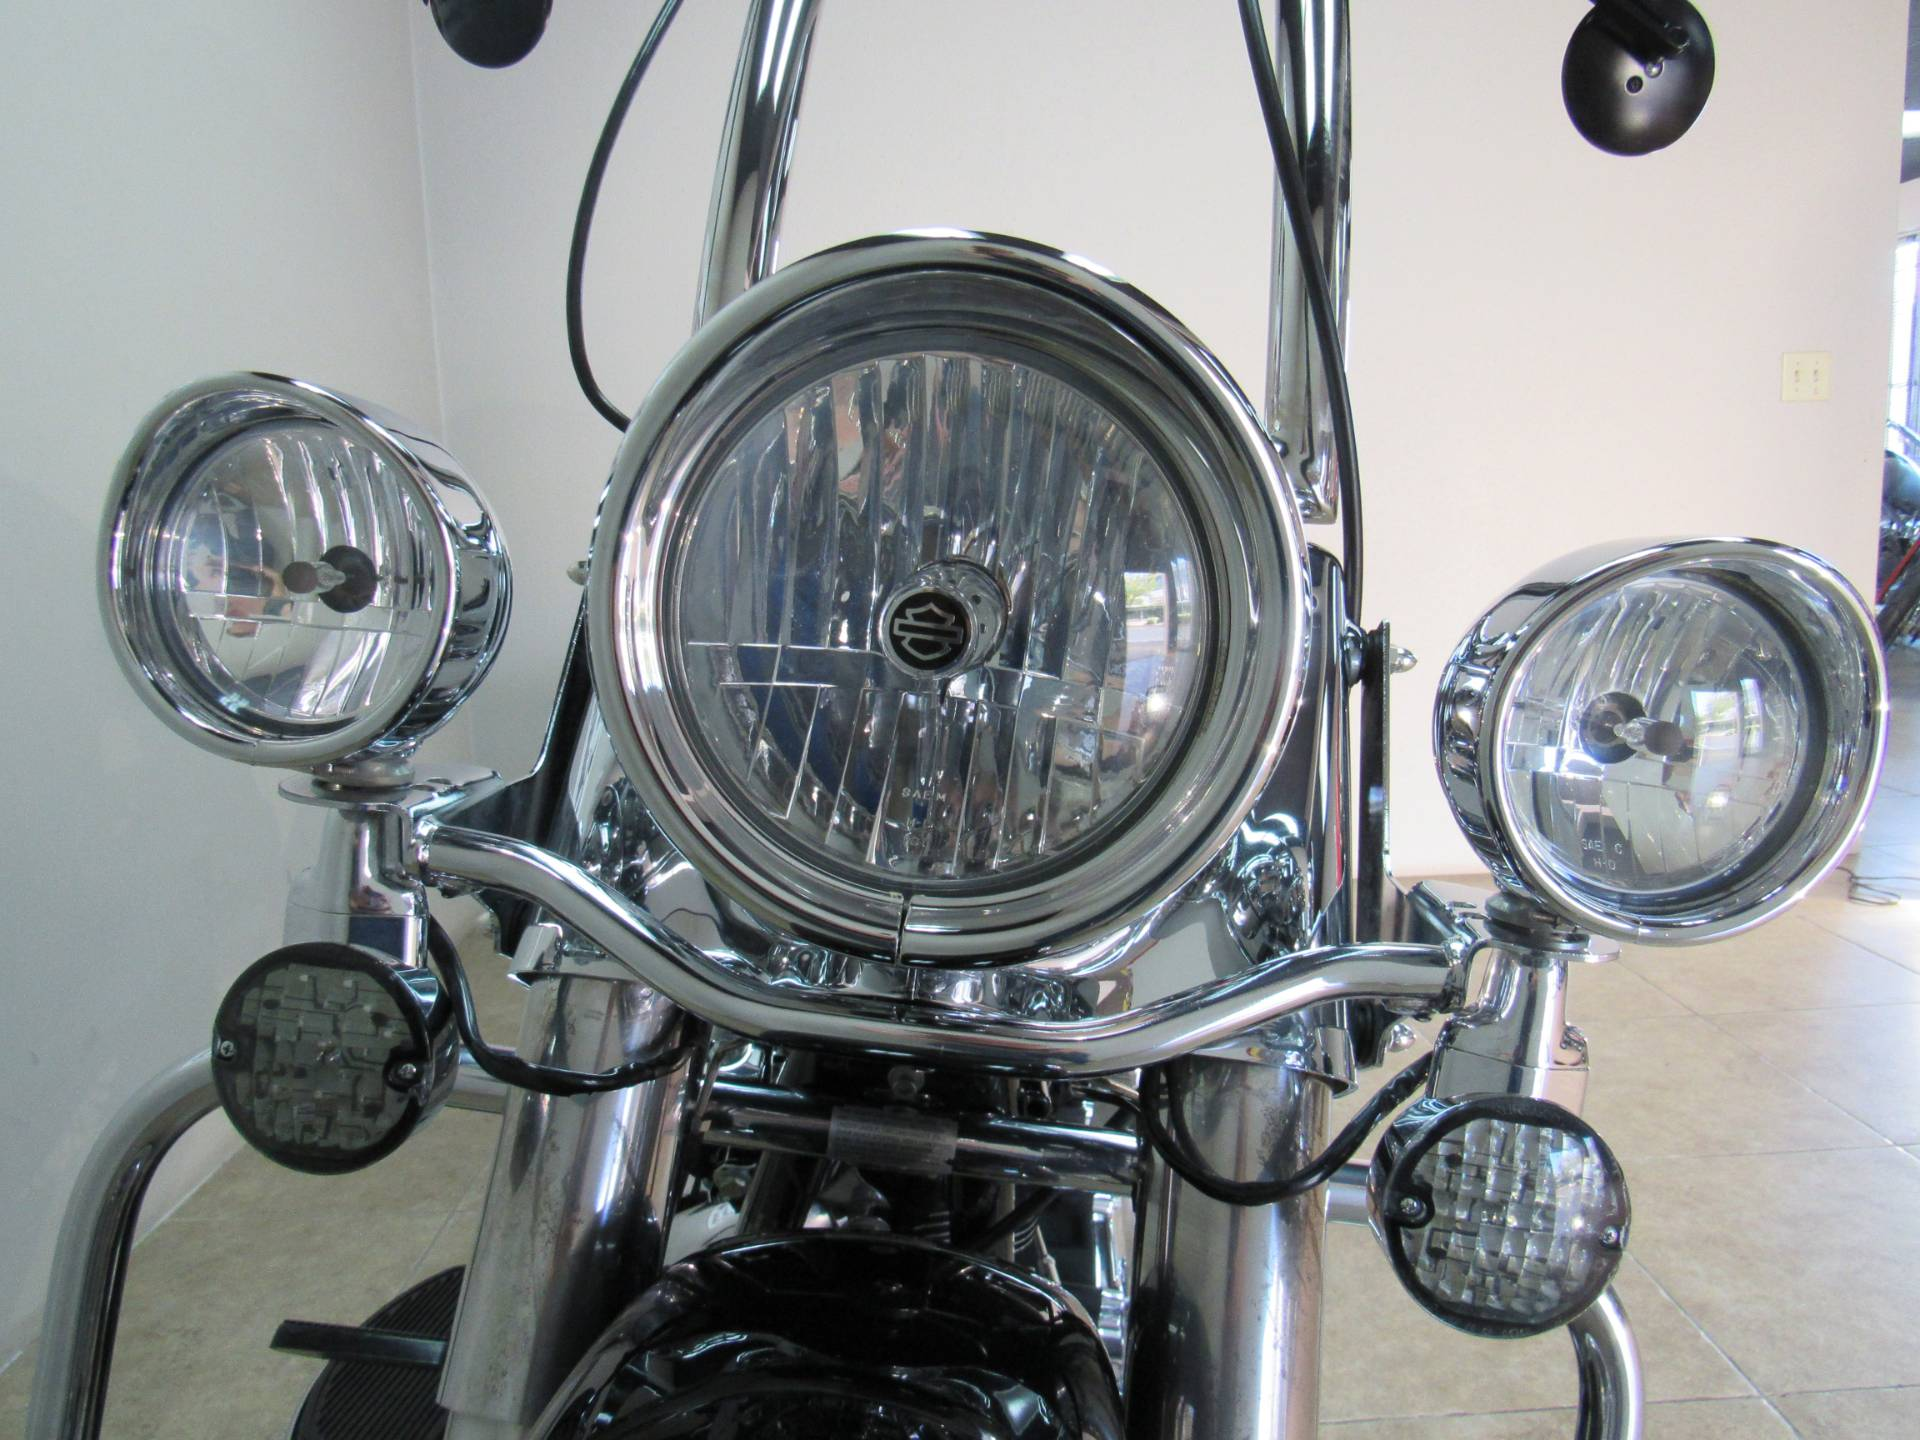 2009 Harley-Davidson Road King® in Temecula, California - Photo 32